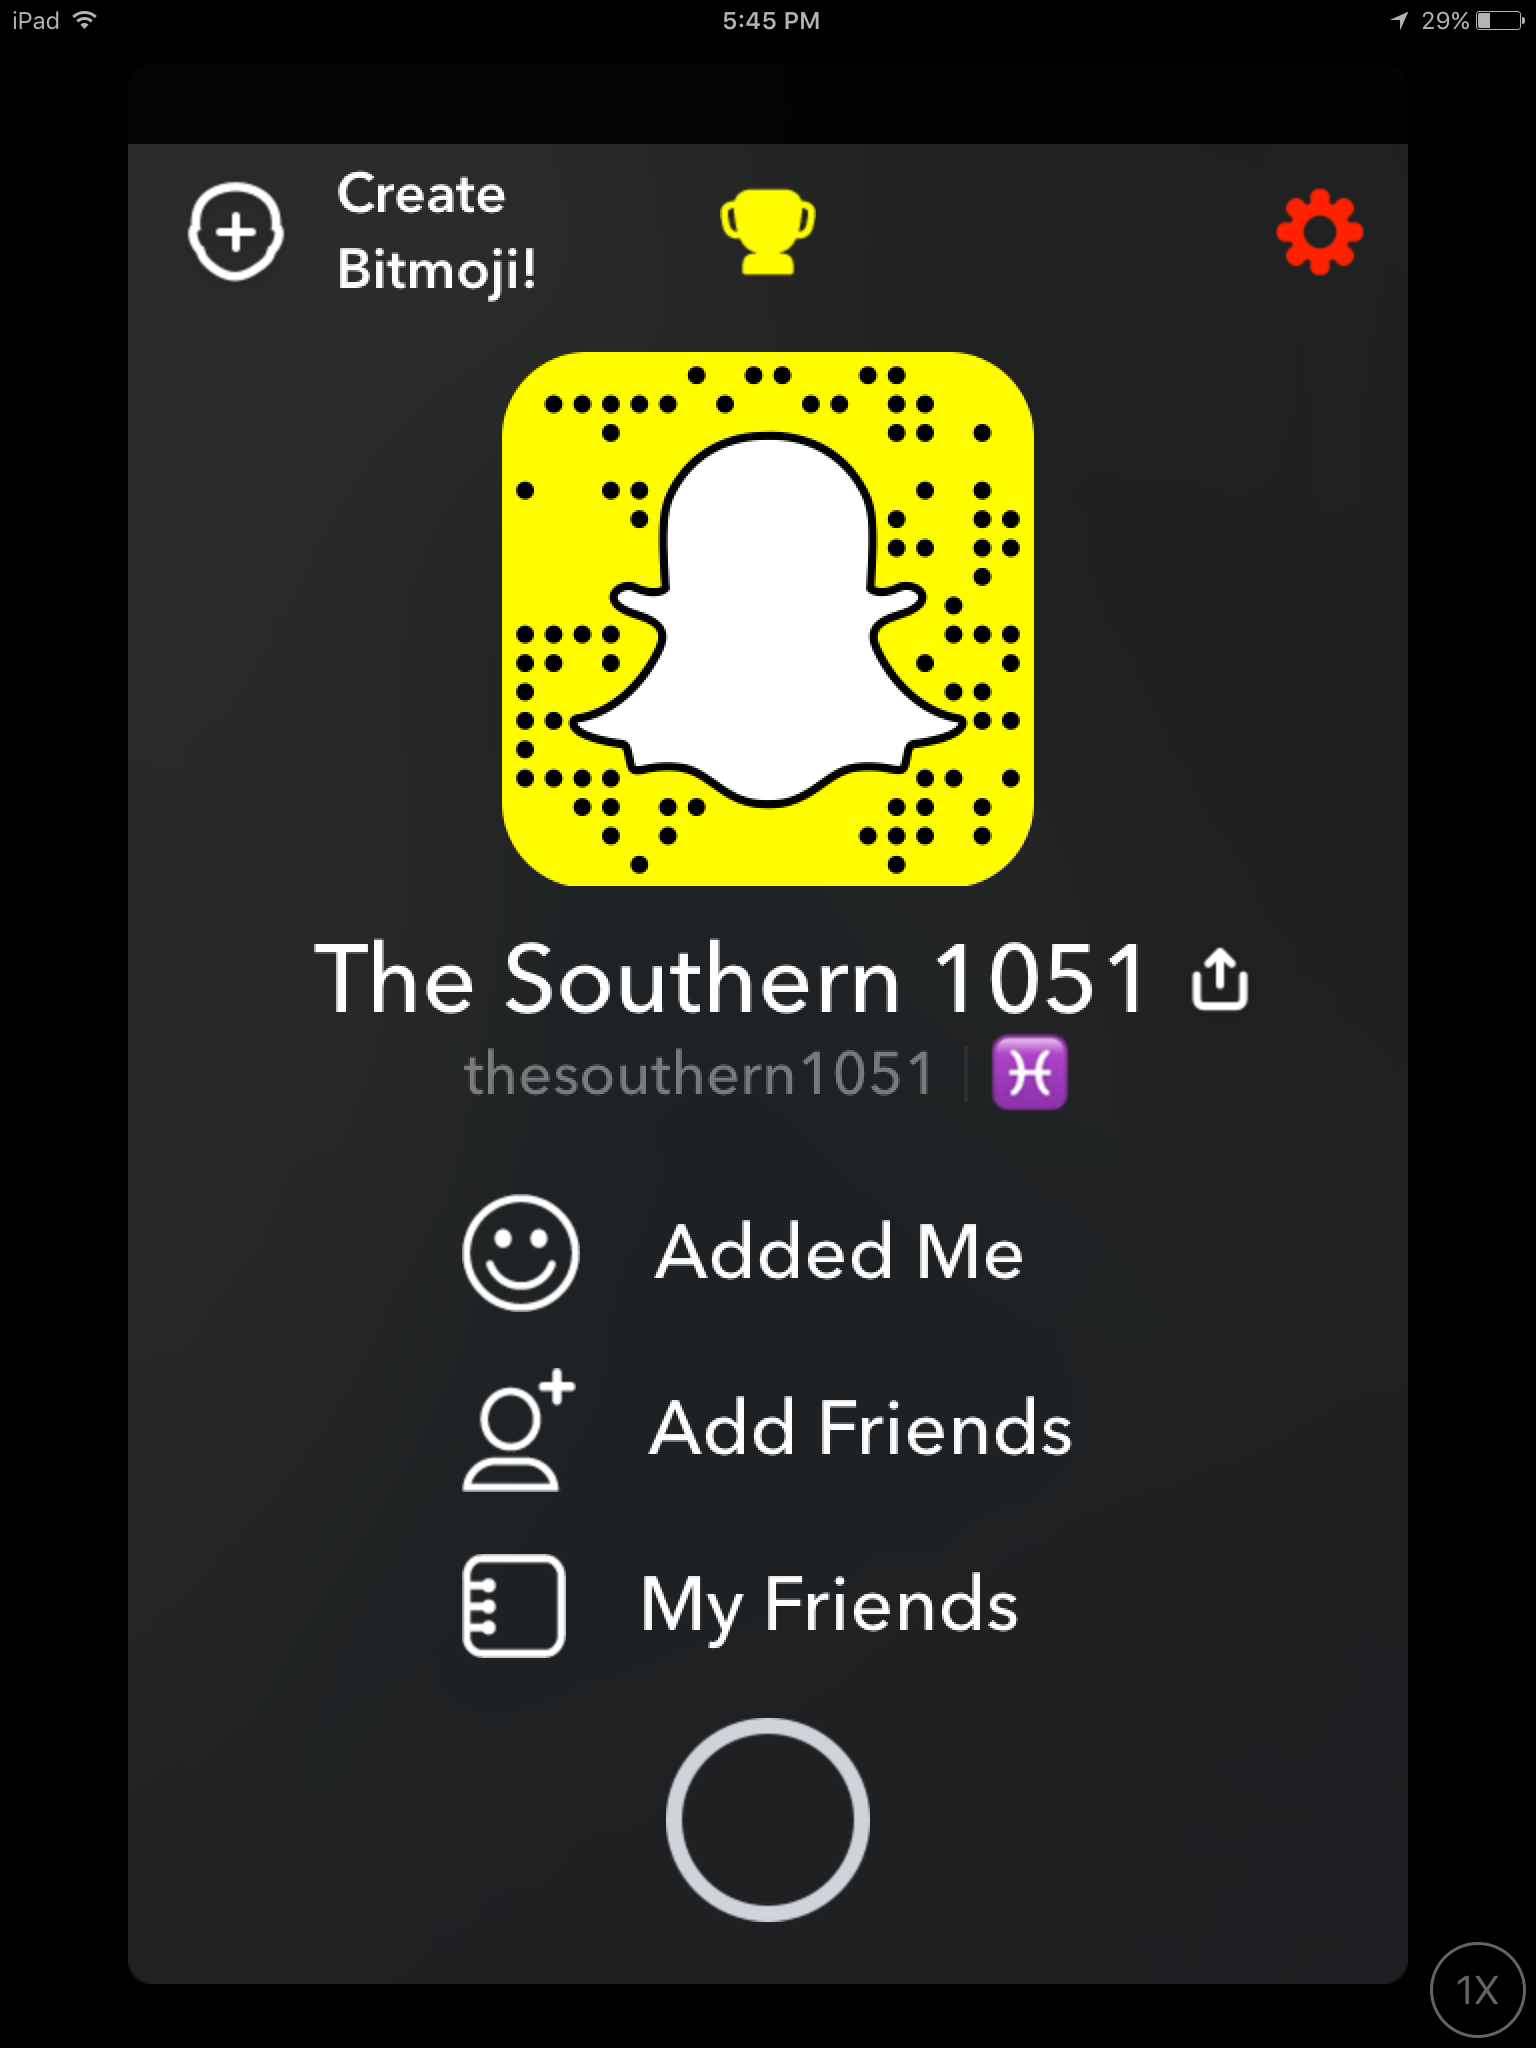 The Southern @ 1051 image 6